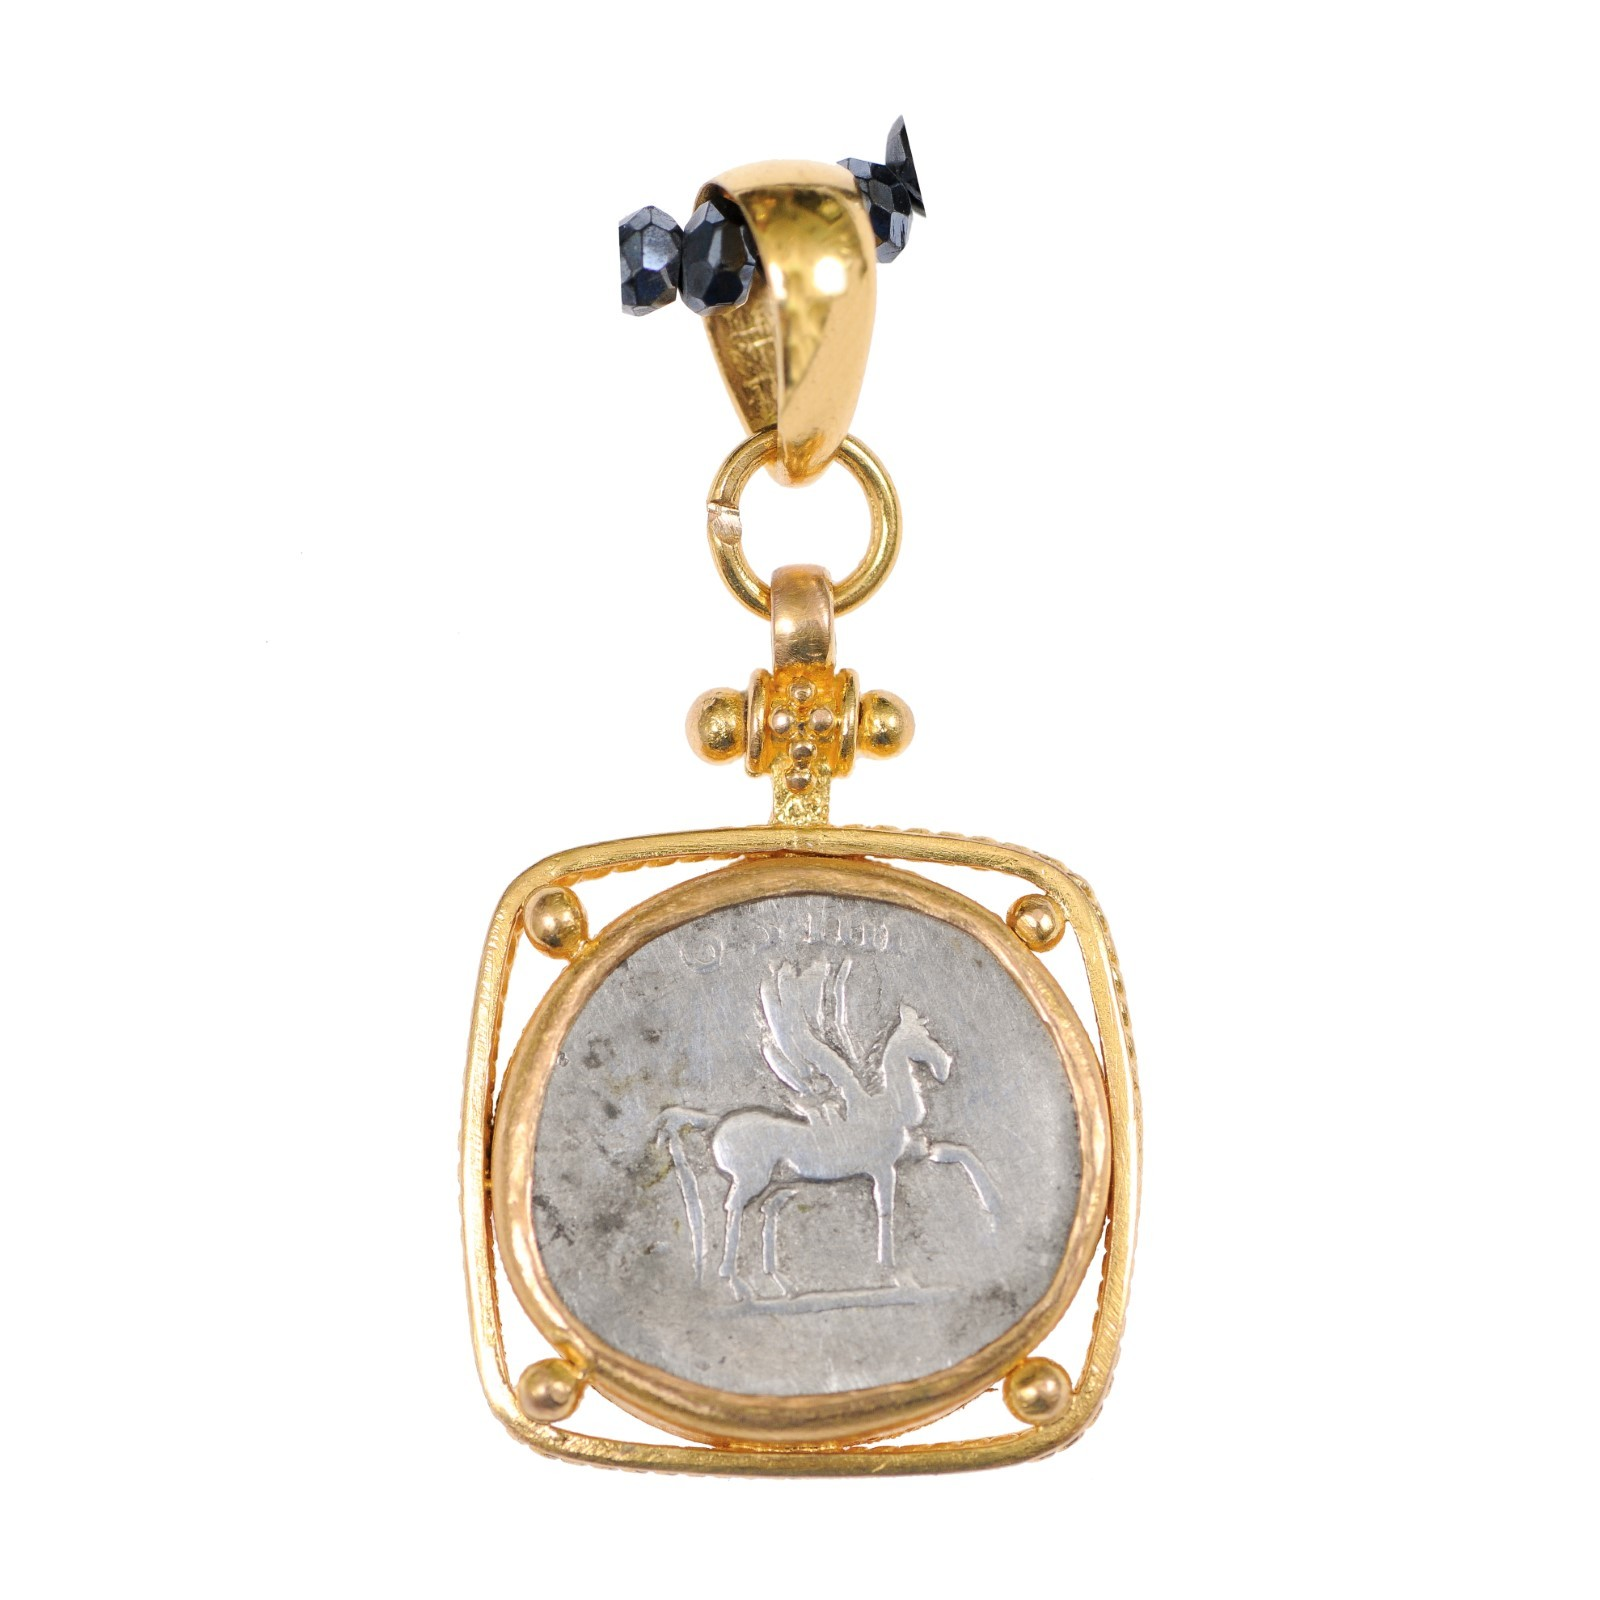 Ancient Roman Pegasus Coin in 22kt Pendant